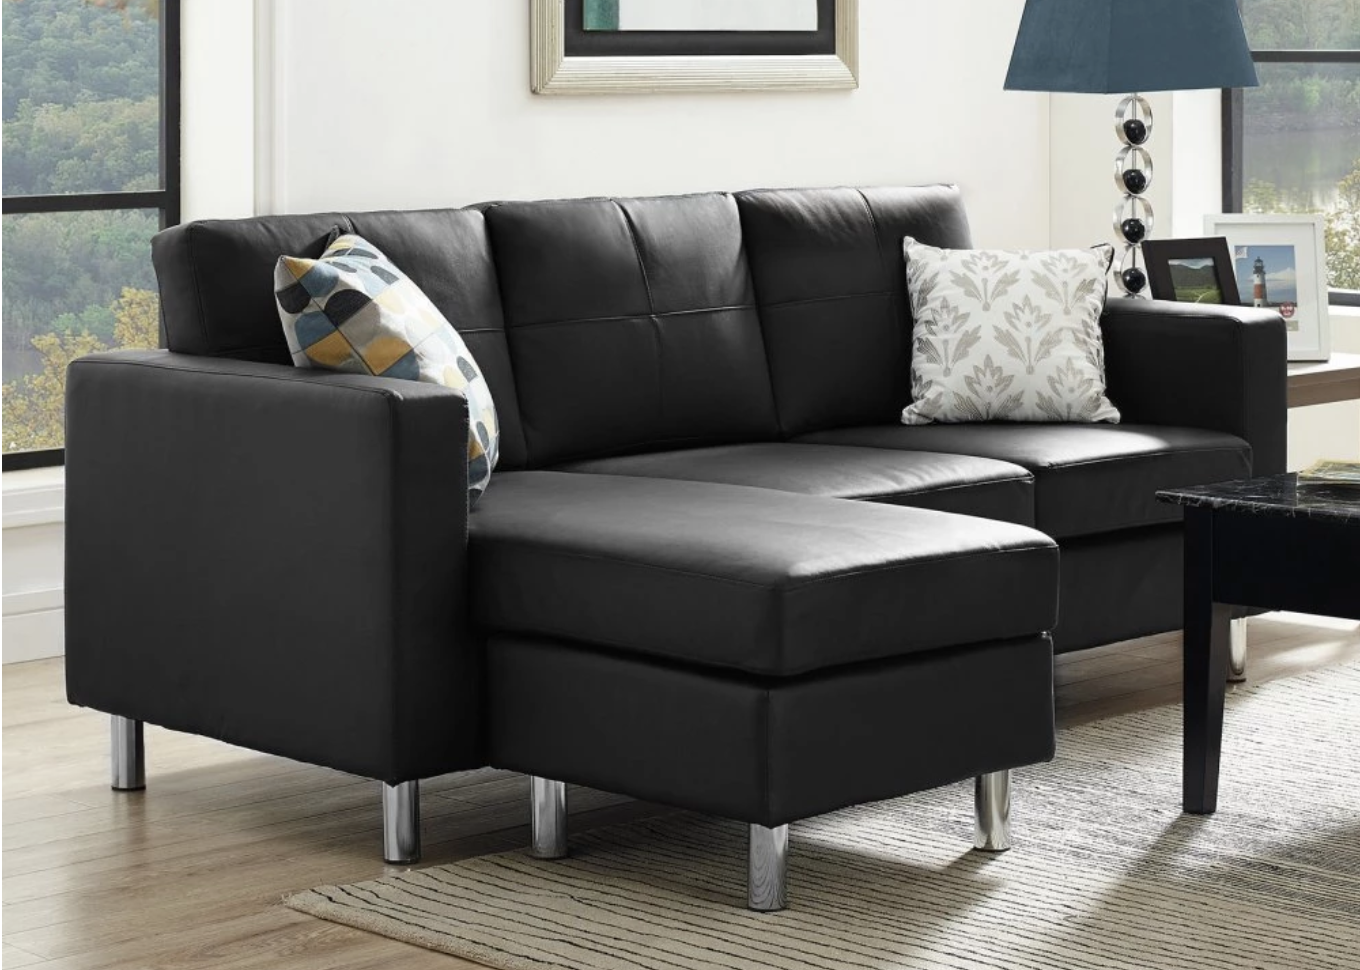 space saving black sectional sofa for small spaces AQVRSHL